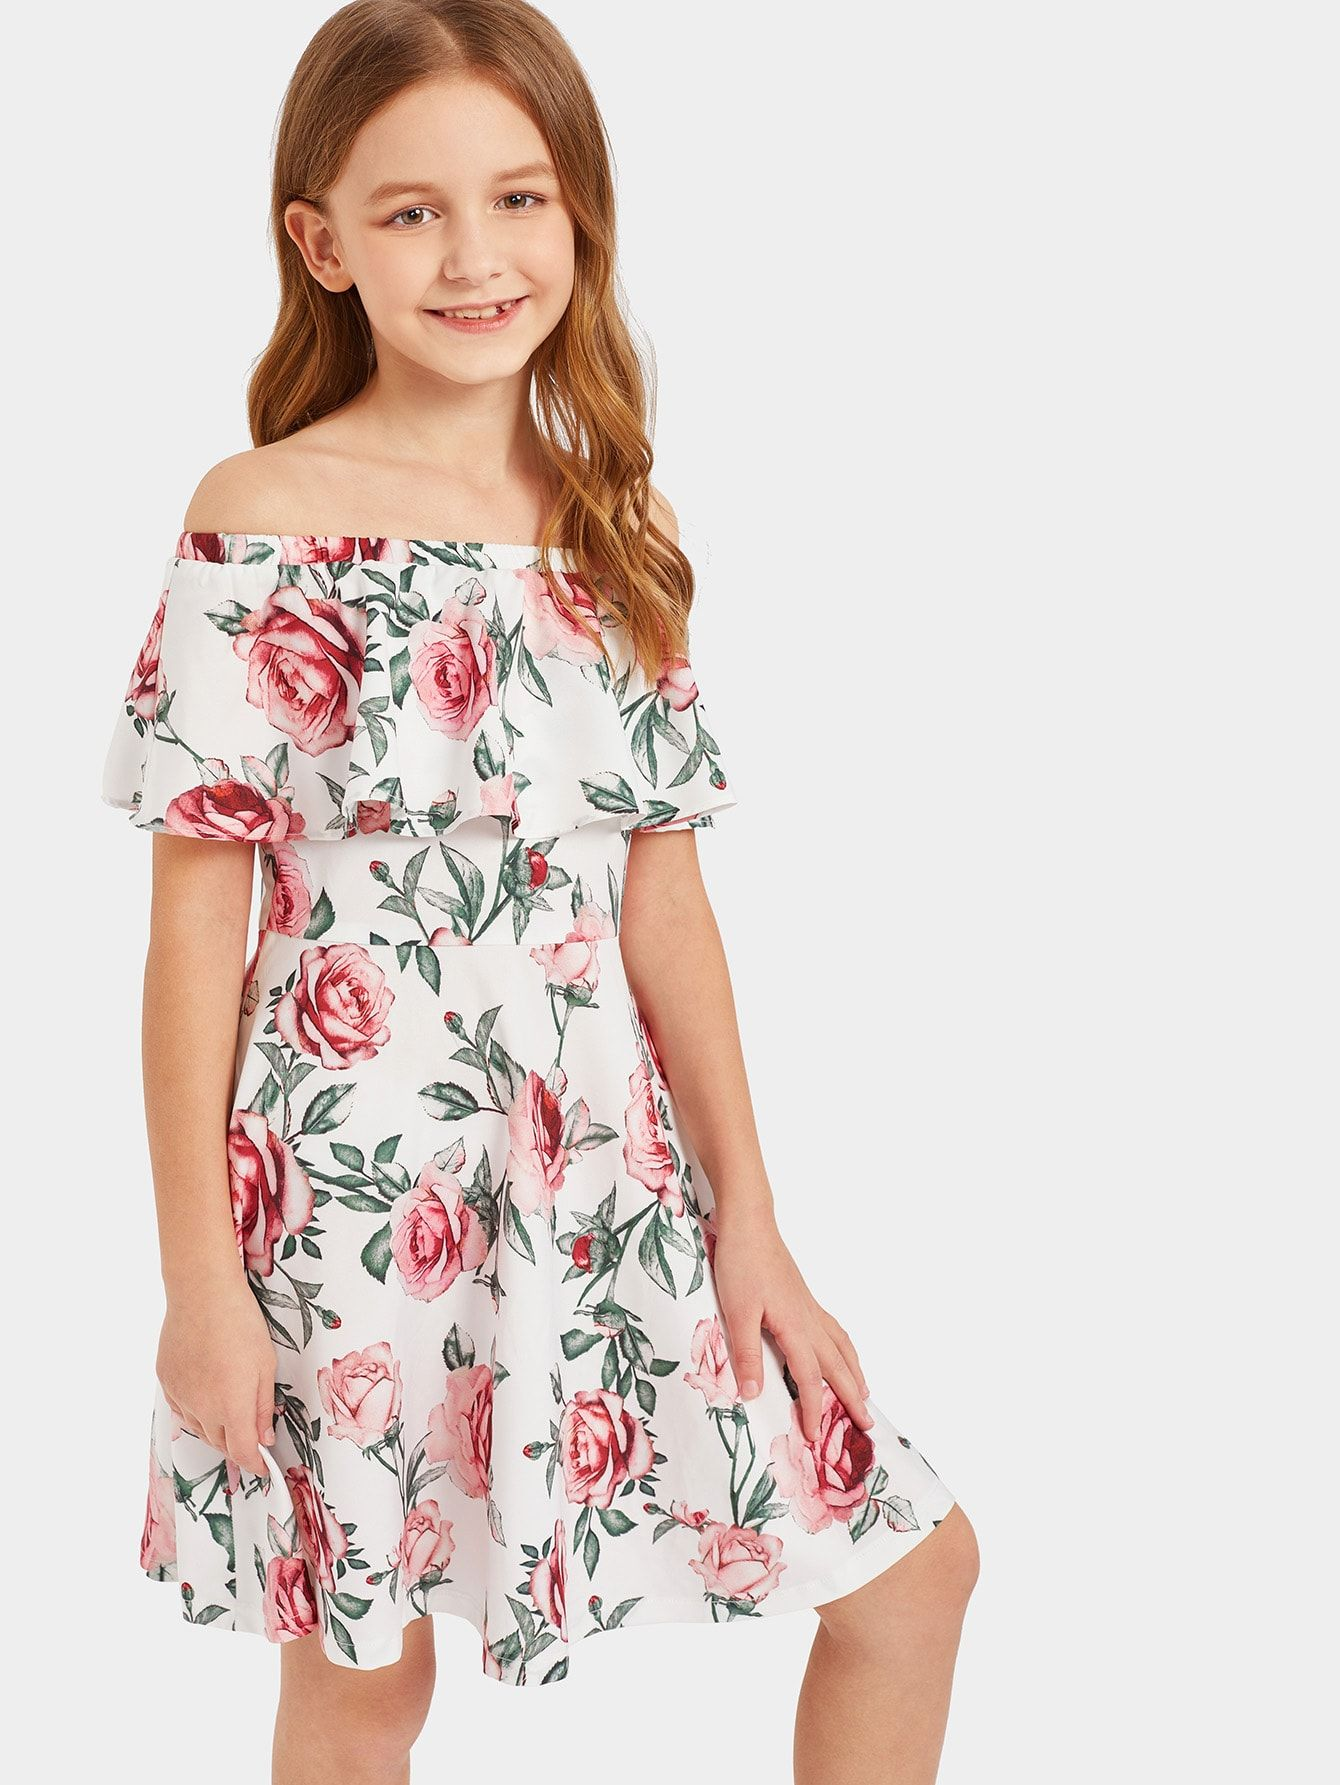 91e2e27895b Girls Ruffle Off Shoulder Floral Dress  moda  fashion  women  trend   necklace